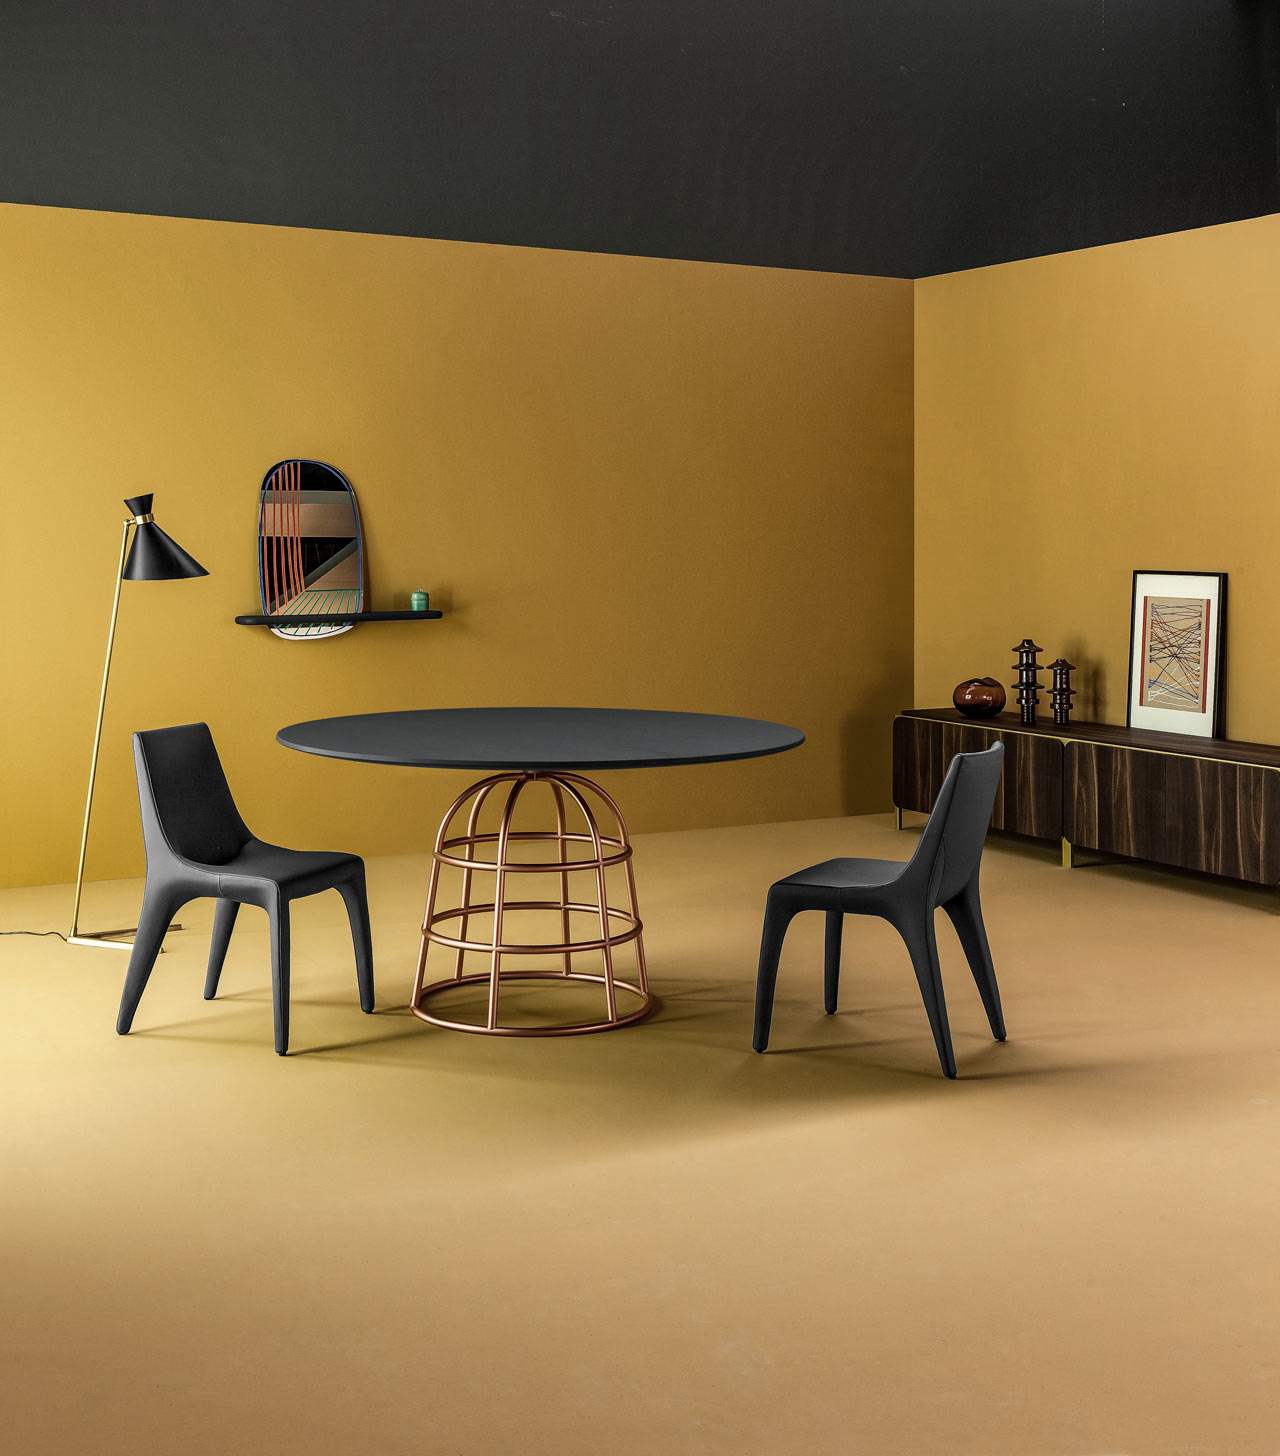 Showroom shot of a dark round table with a gold, metallic base in the shape of a birdcage surrounded by two black plastic chairs in a mustard-colored room. A conical floor lamp and a low credenza complete the scene.